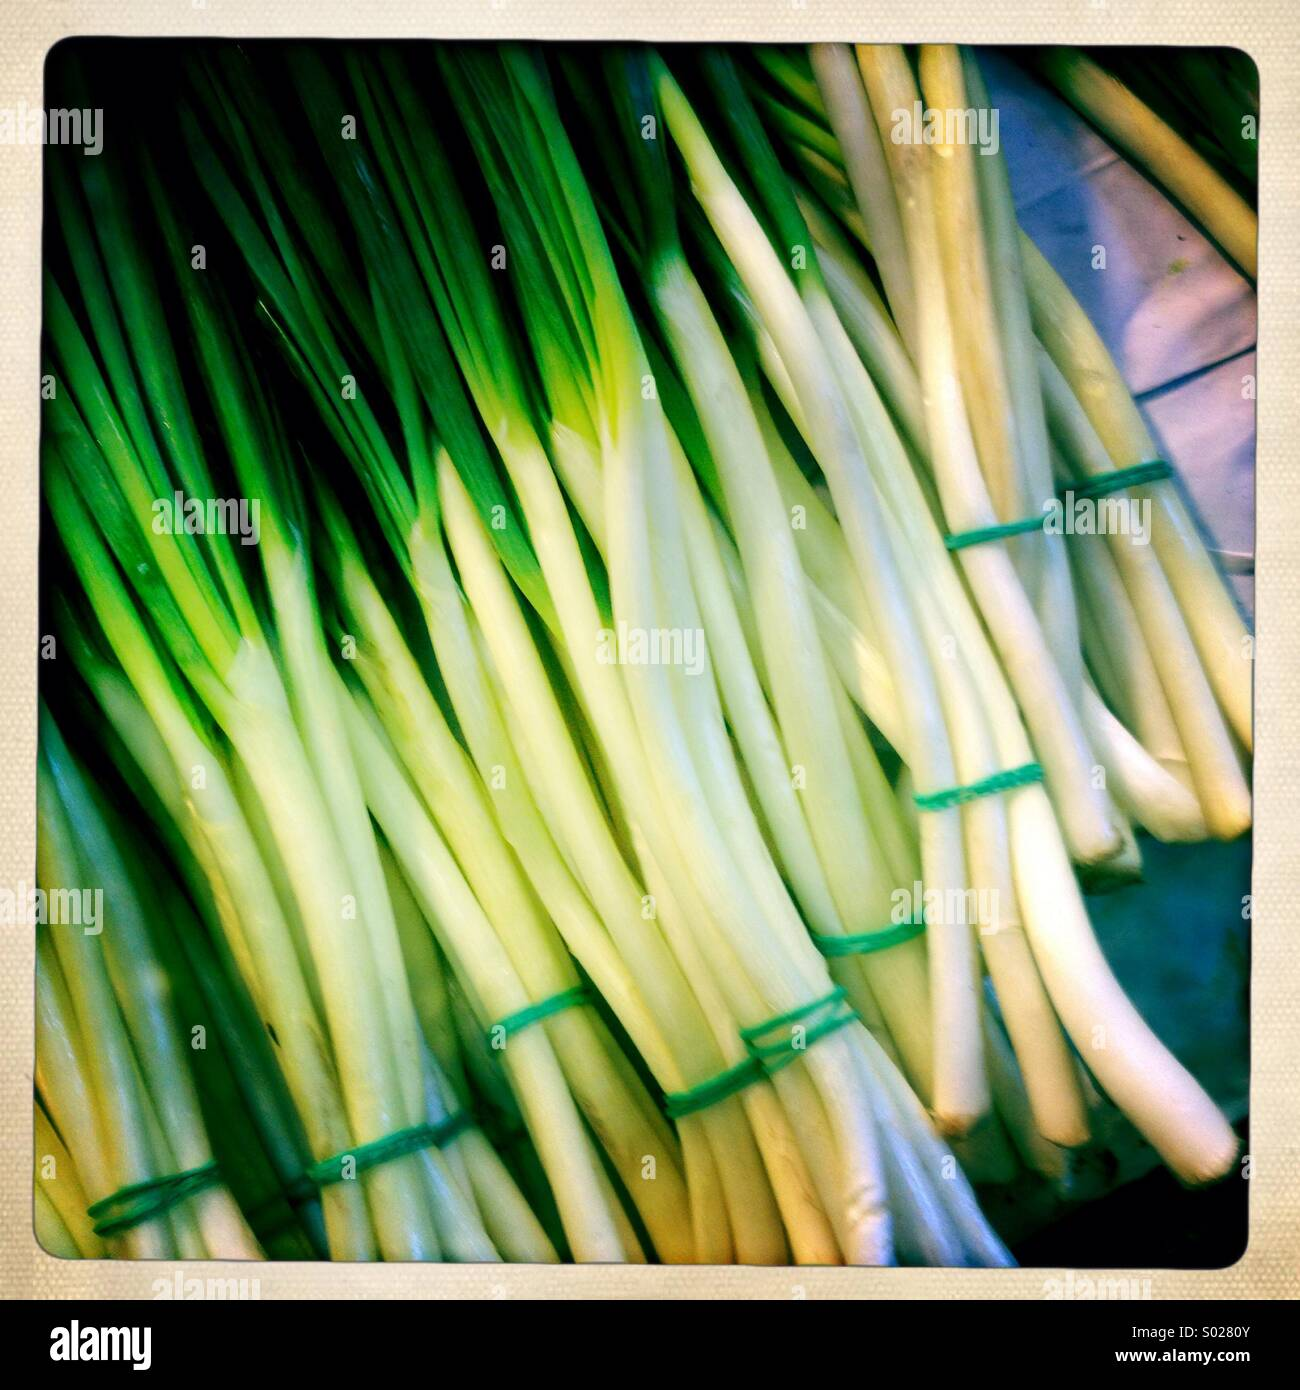 Fresh spring onions on market stall - Stock Image